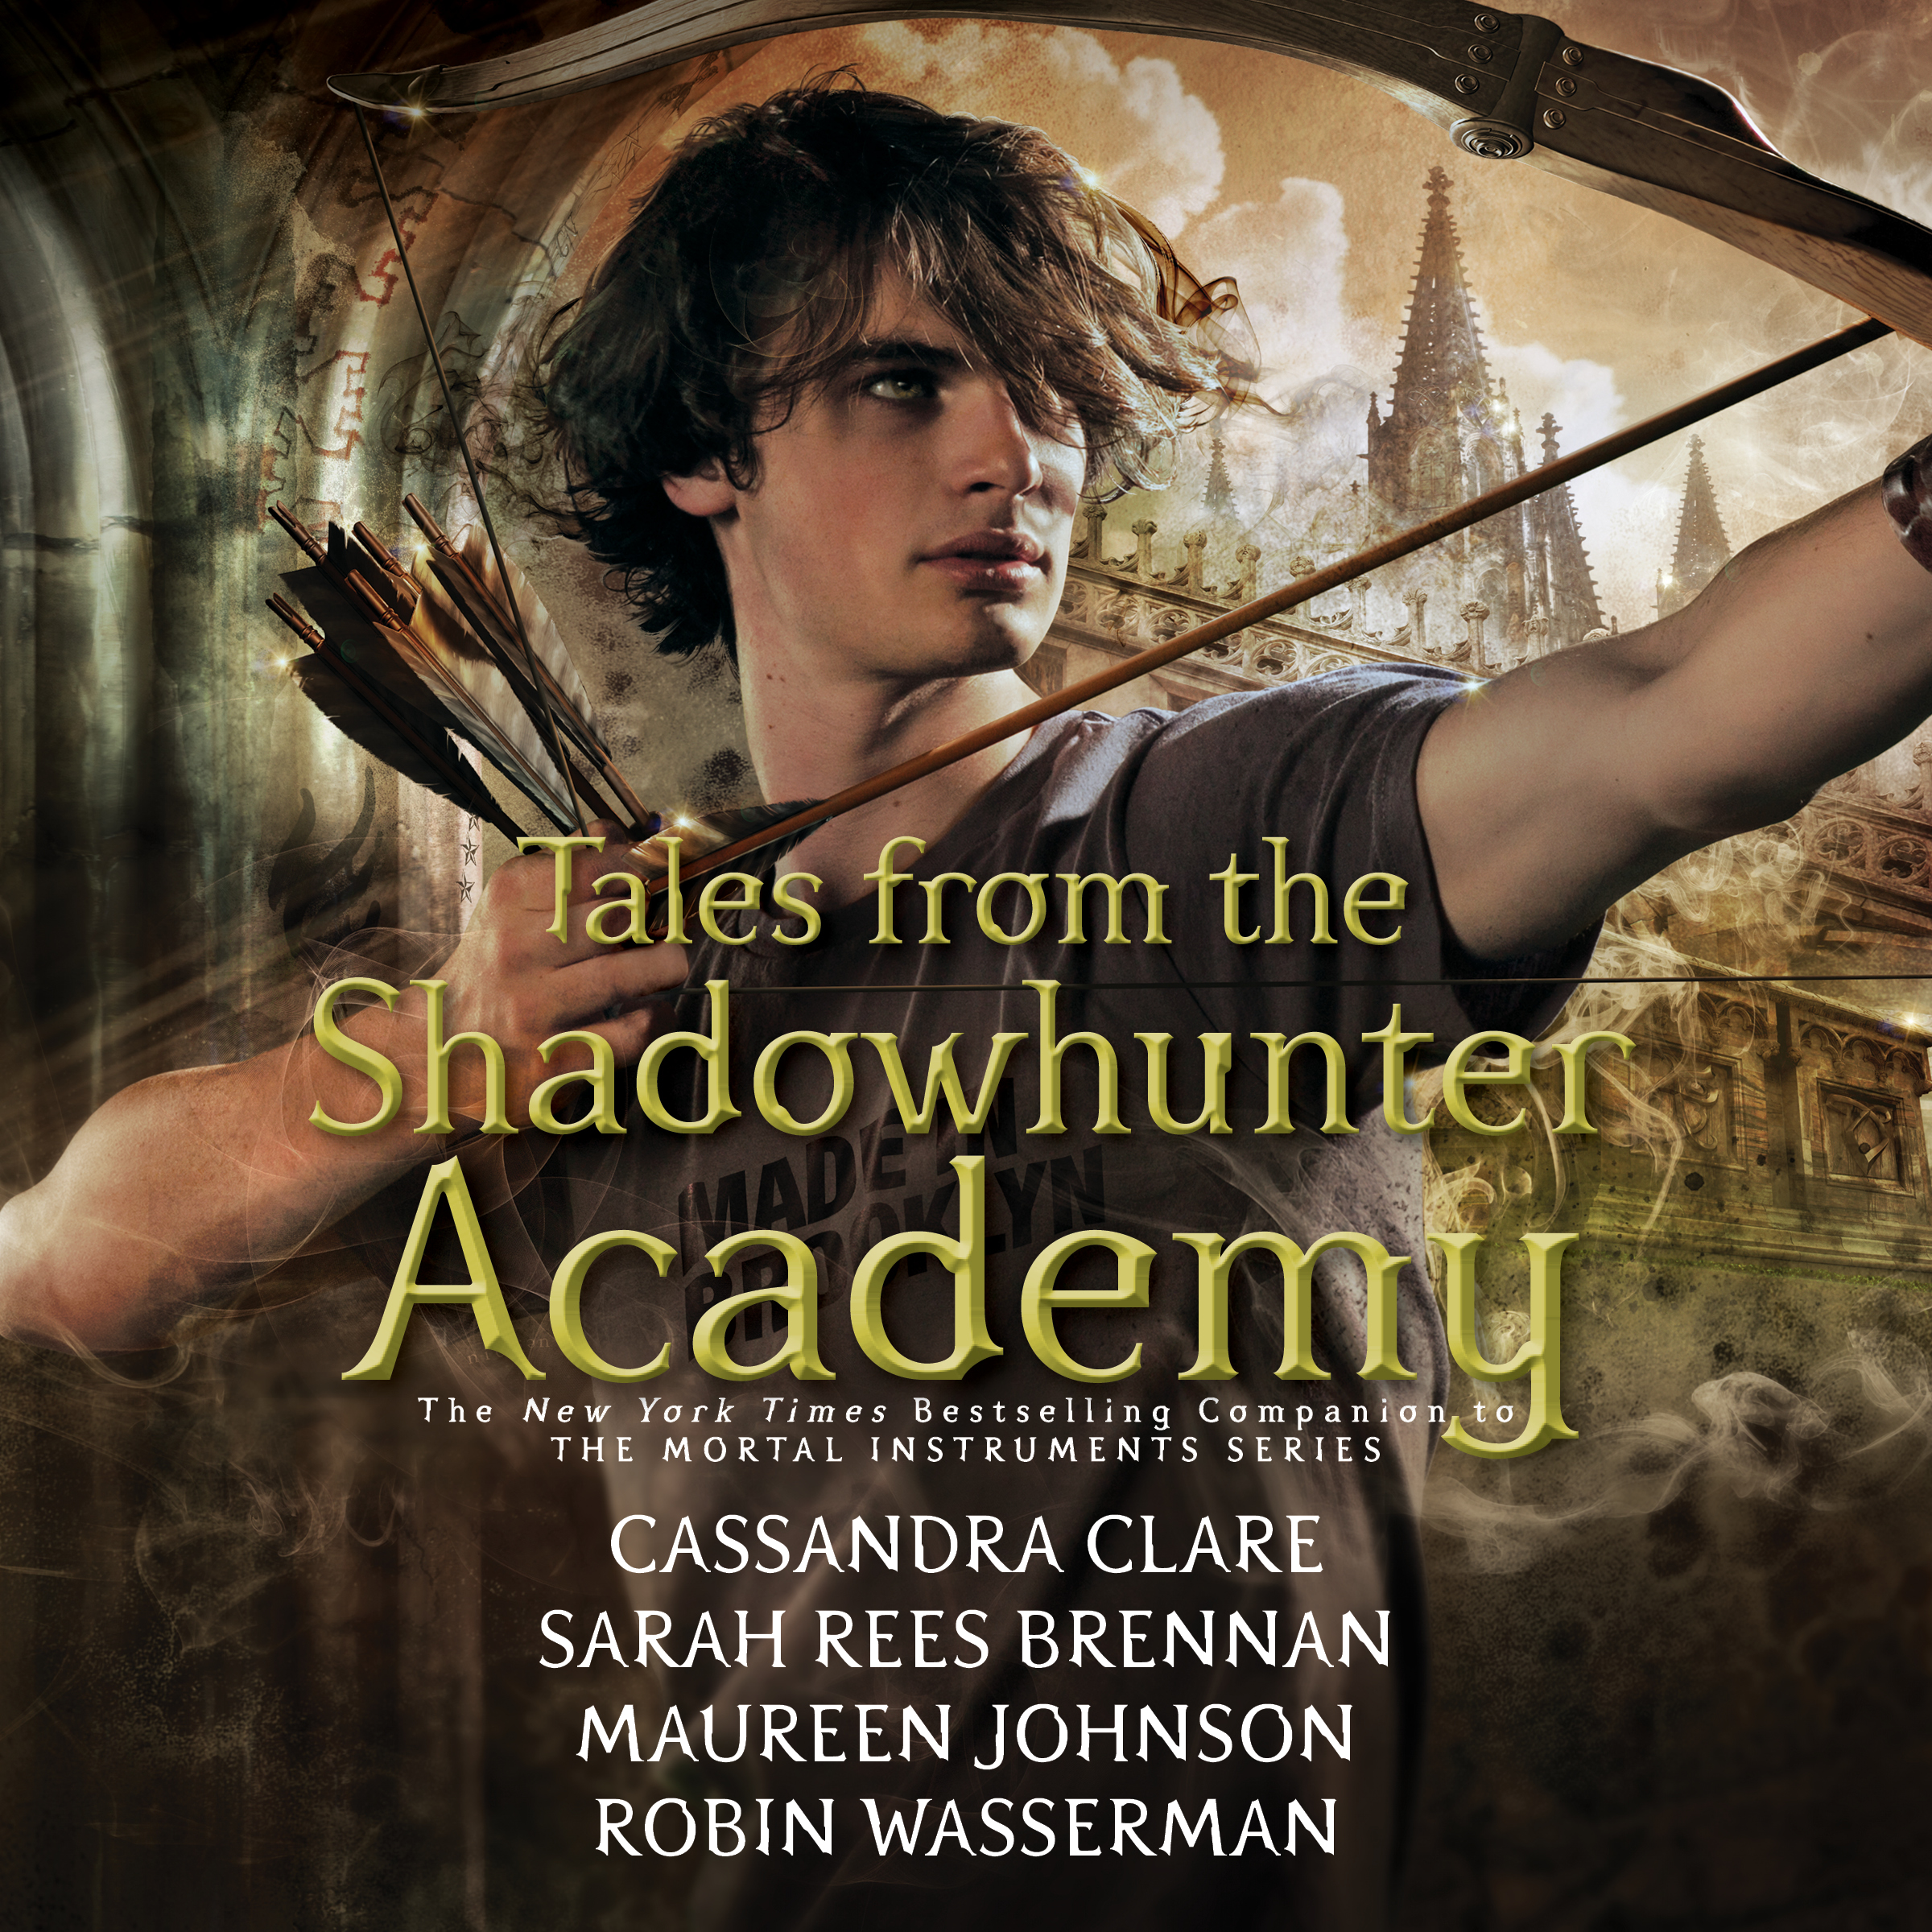 Tales from the shadowhunter academy 9781442384620 hr